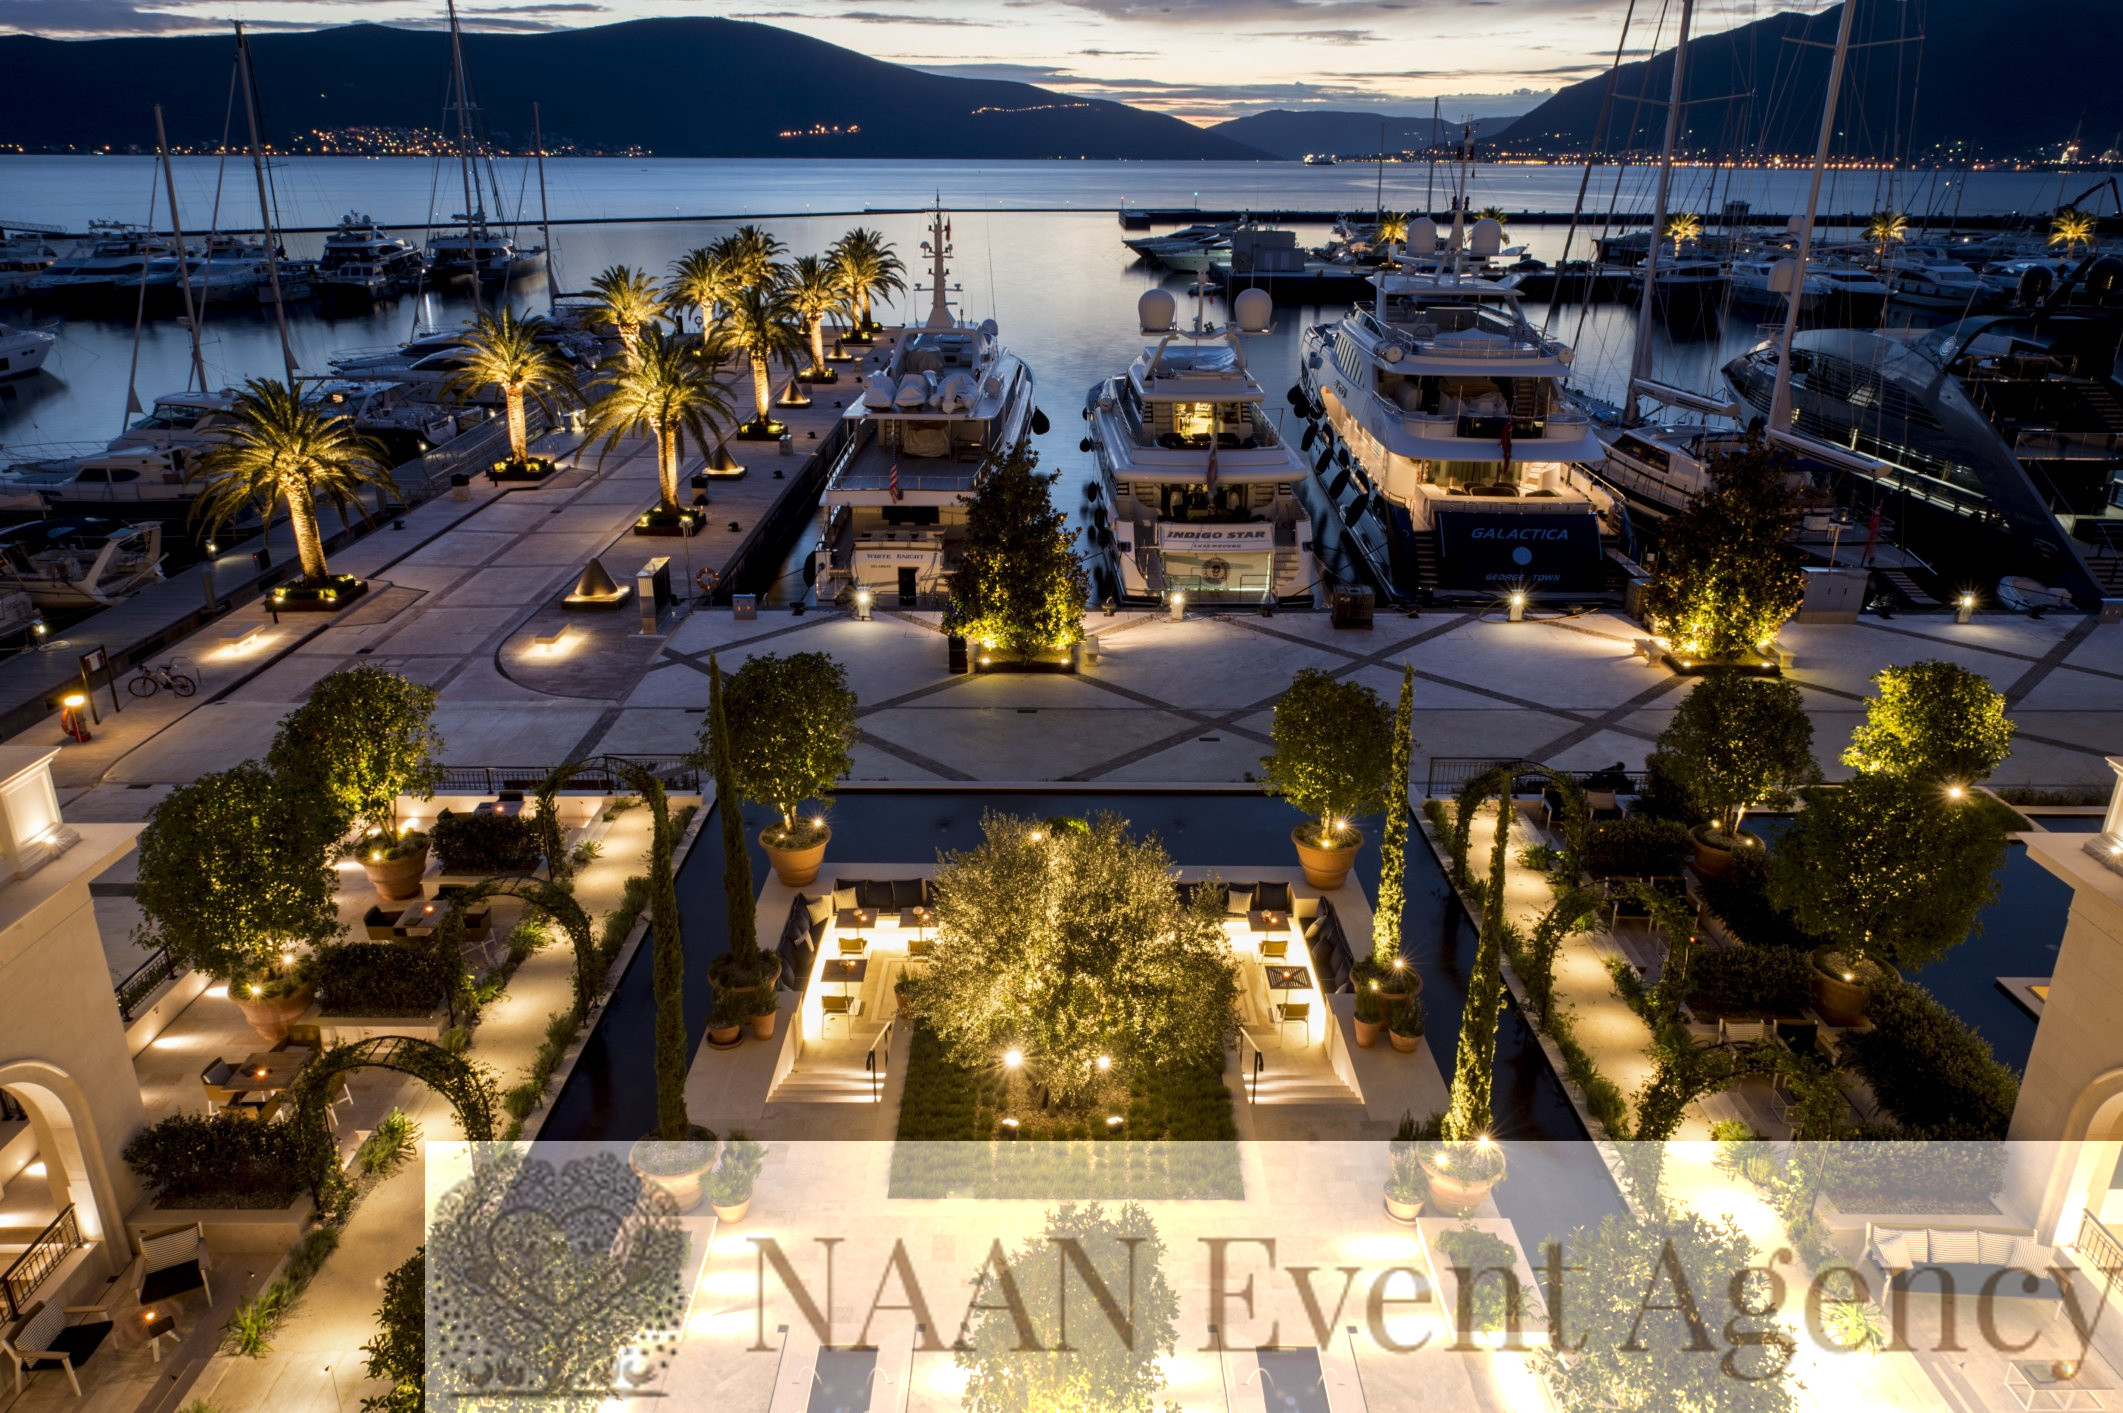 9015-regent-porto-montenegro-look-back-on-a-stellar-first-year (1)